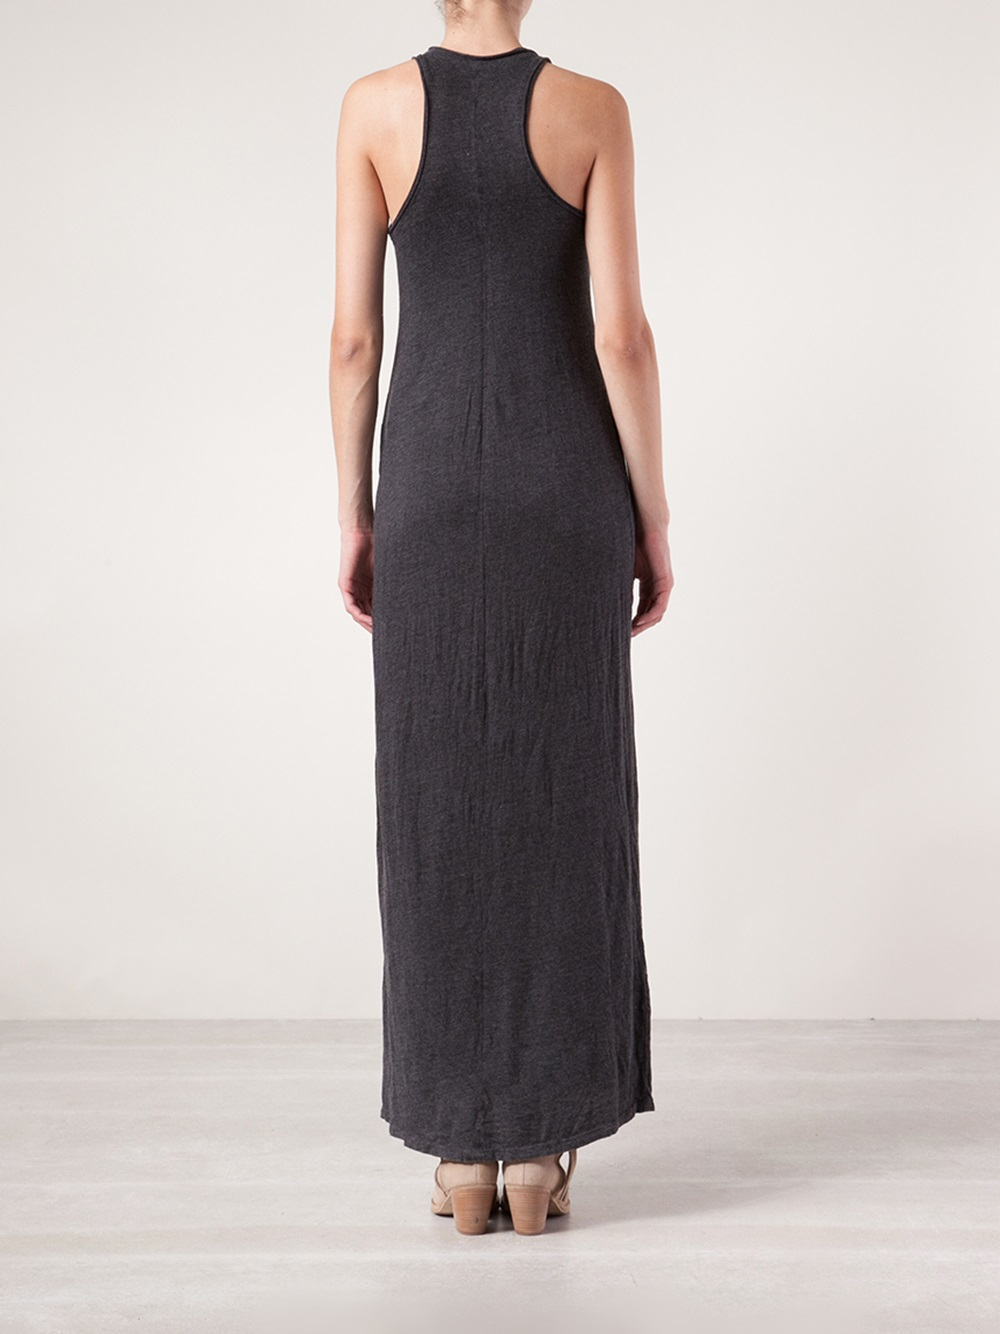 Shop for black tank maxi dress online at Target. Free shipping on purchases over $35 and save 5% every day with your Target REDcard.